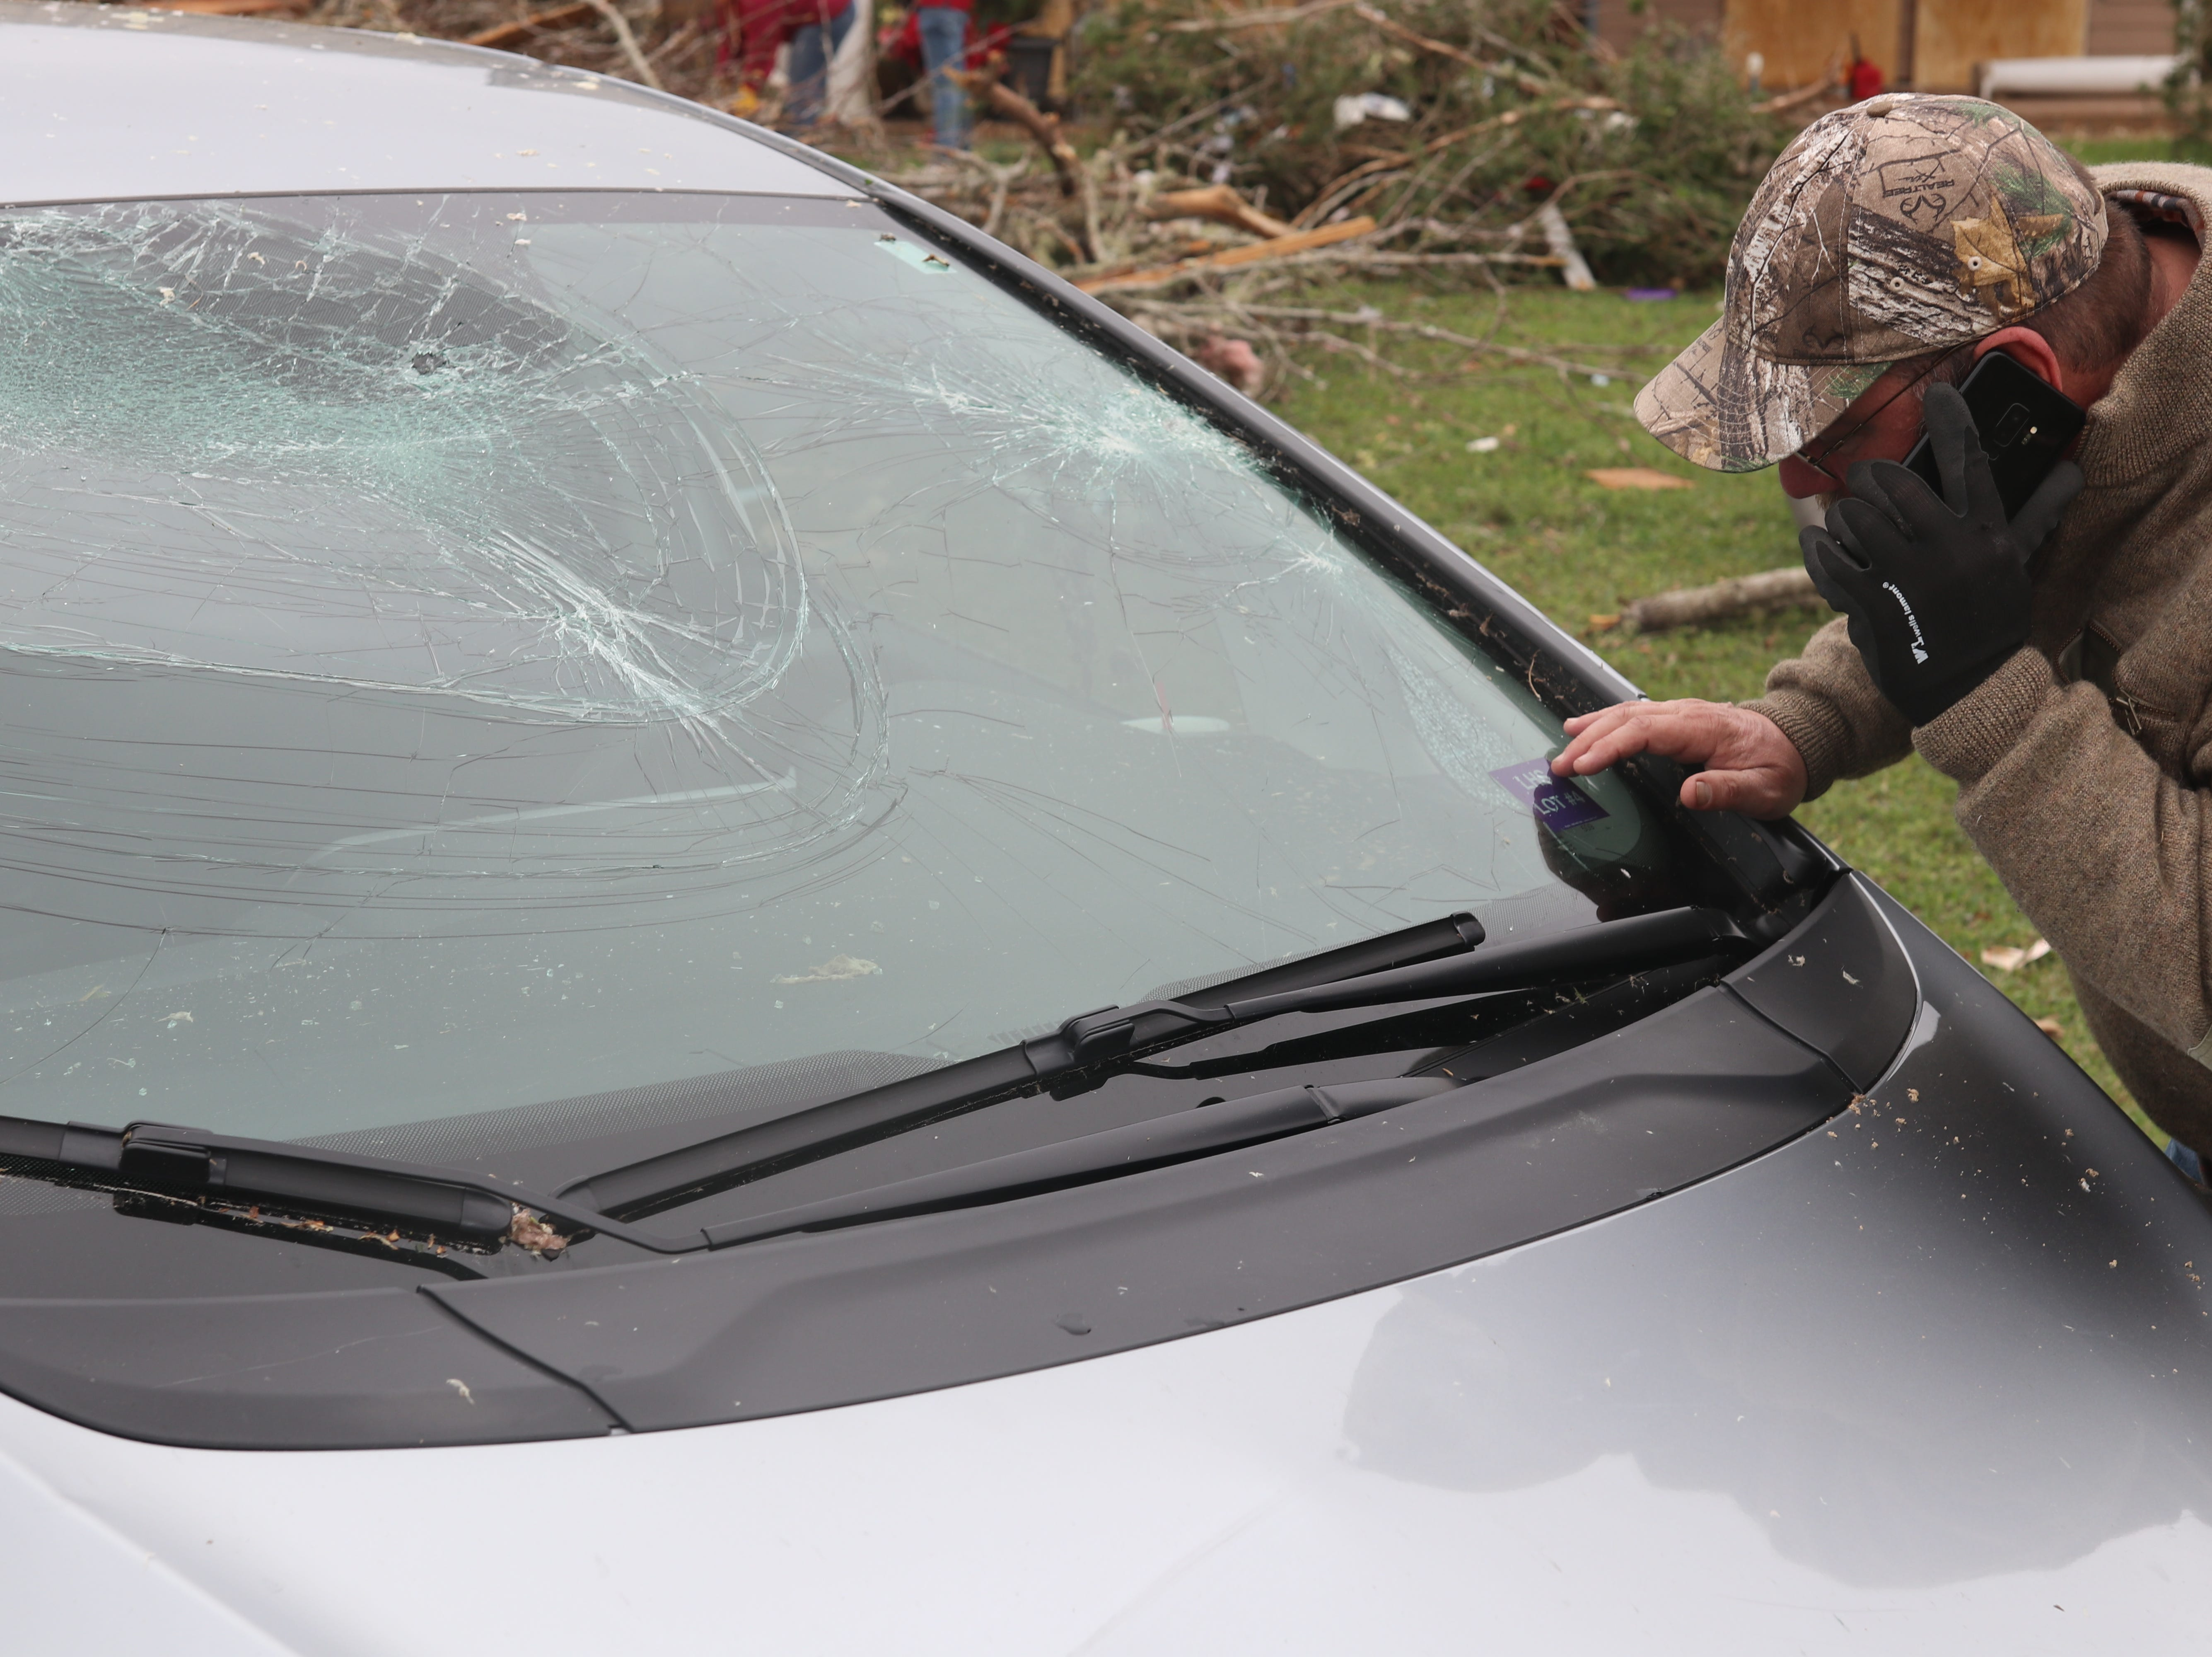 David Byler inspects a car smashed by a tree in a tornado Sunday March 3.